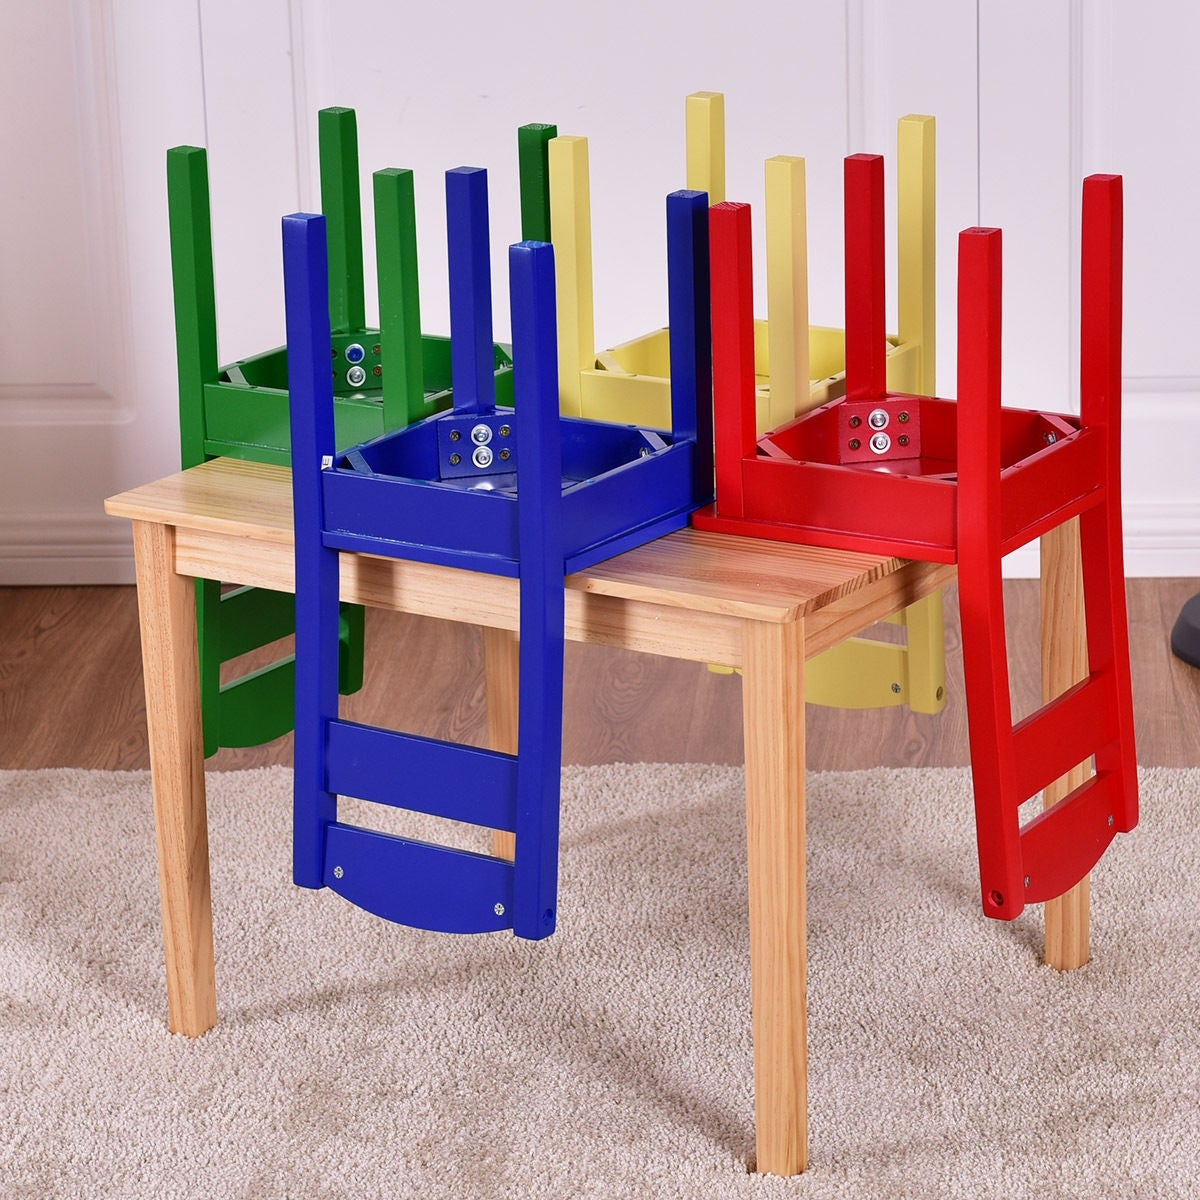 2c3c1ec06363d Shop Costway Kids 5 Piece Table Chair Set Pine Wood Multicolor Children  Play Room Furniture - On Sale - Free Shipping Today - Overstock - 16088559